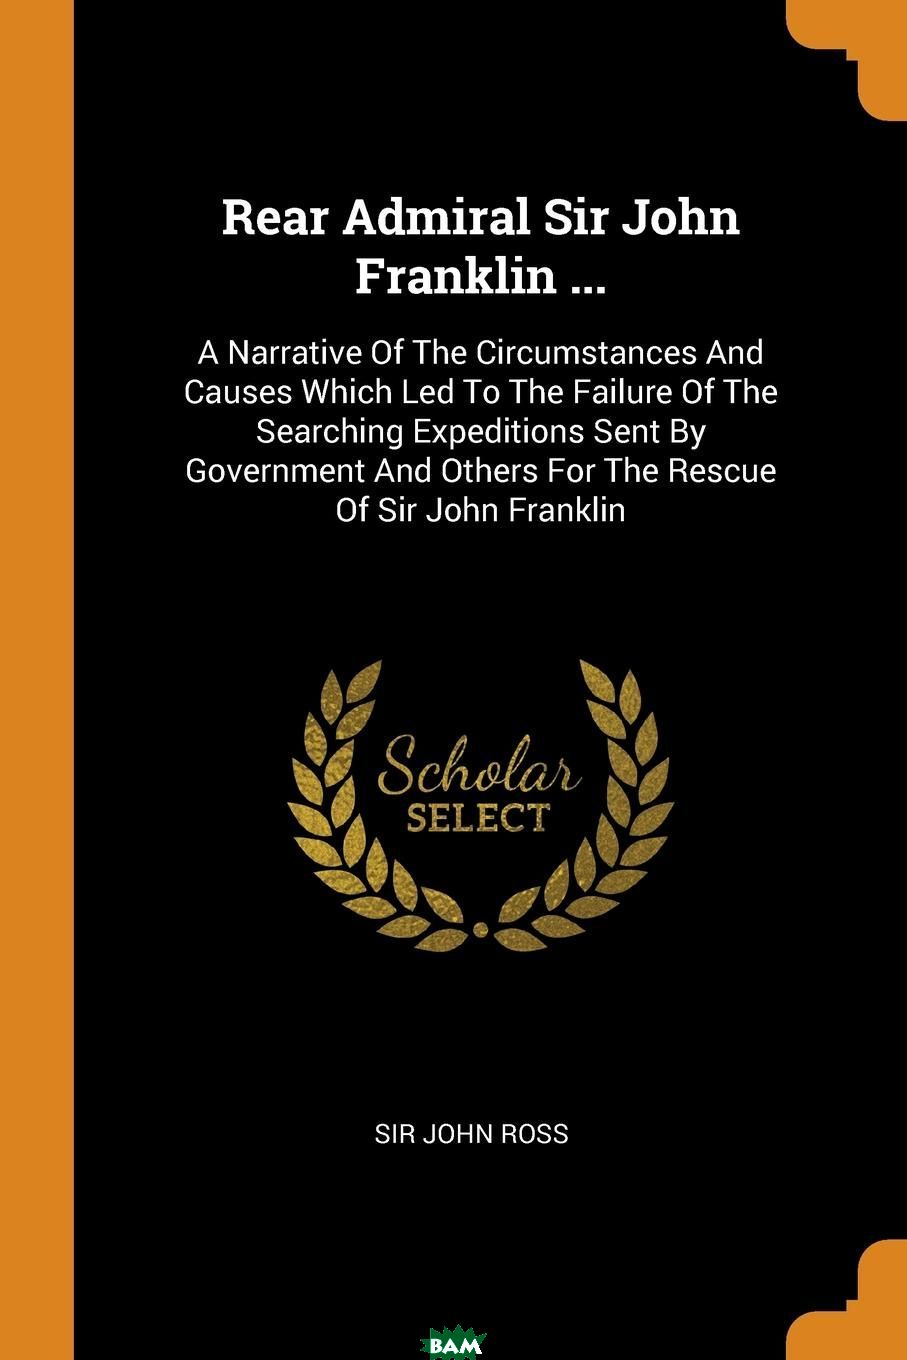 Купить Rear Admiral Sir John Franklin ... A Narrative Of The Circumstances And Causes Which Led To The Failure Of The Searching Expeditions Sent By Government And Others For The Rescue Of Sir John Franklin, Sir John Ross, 9780353559844